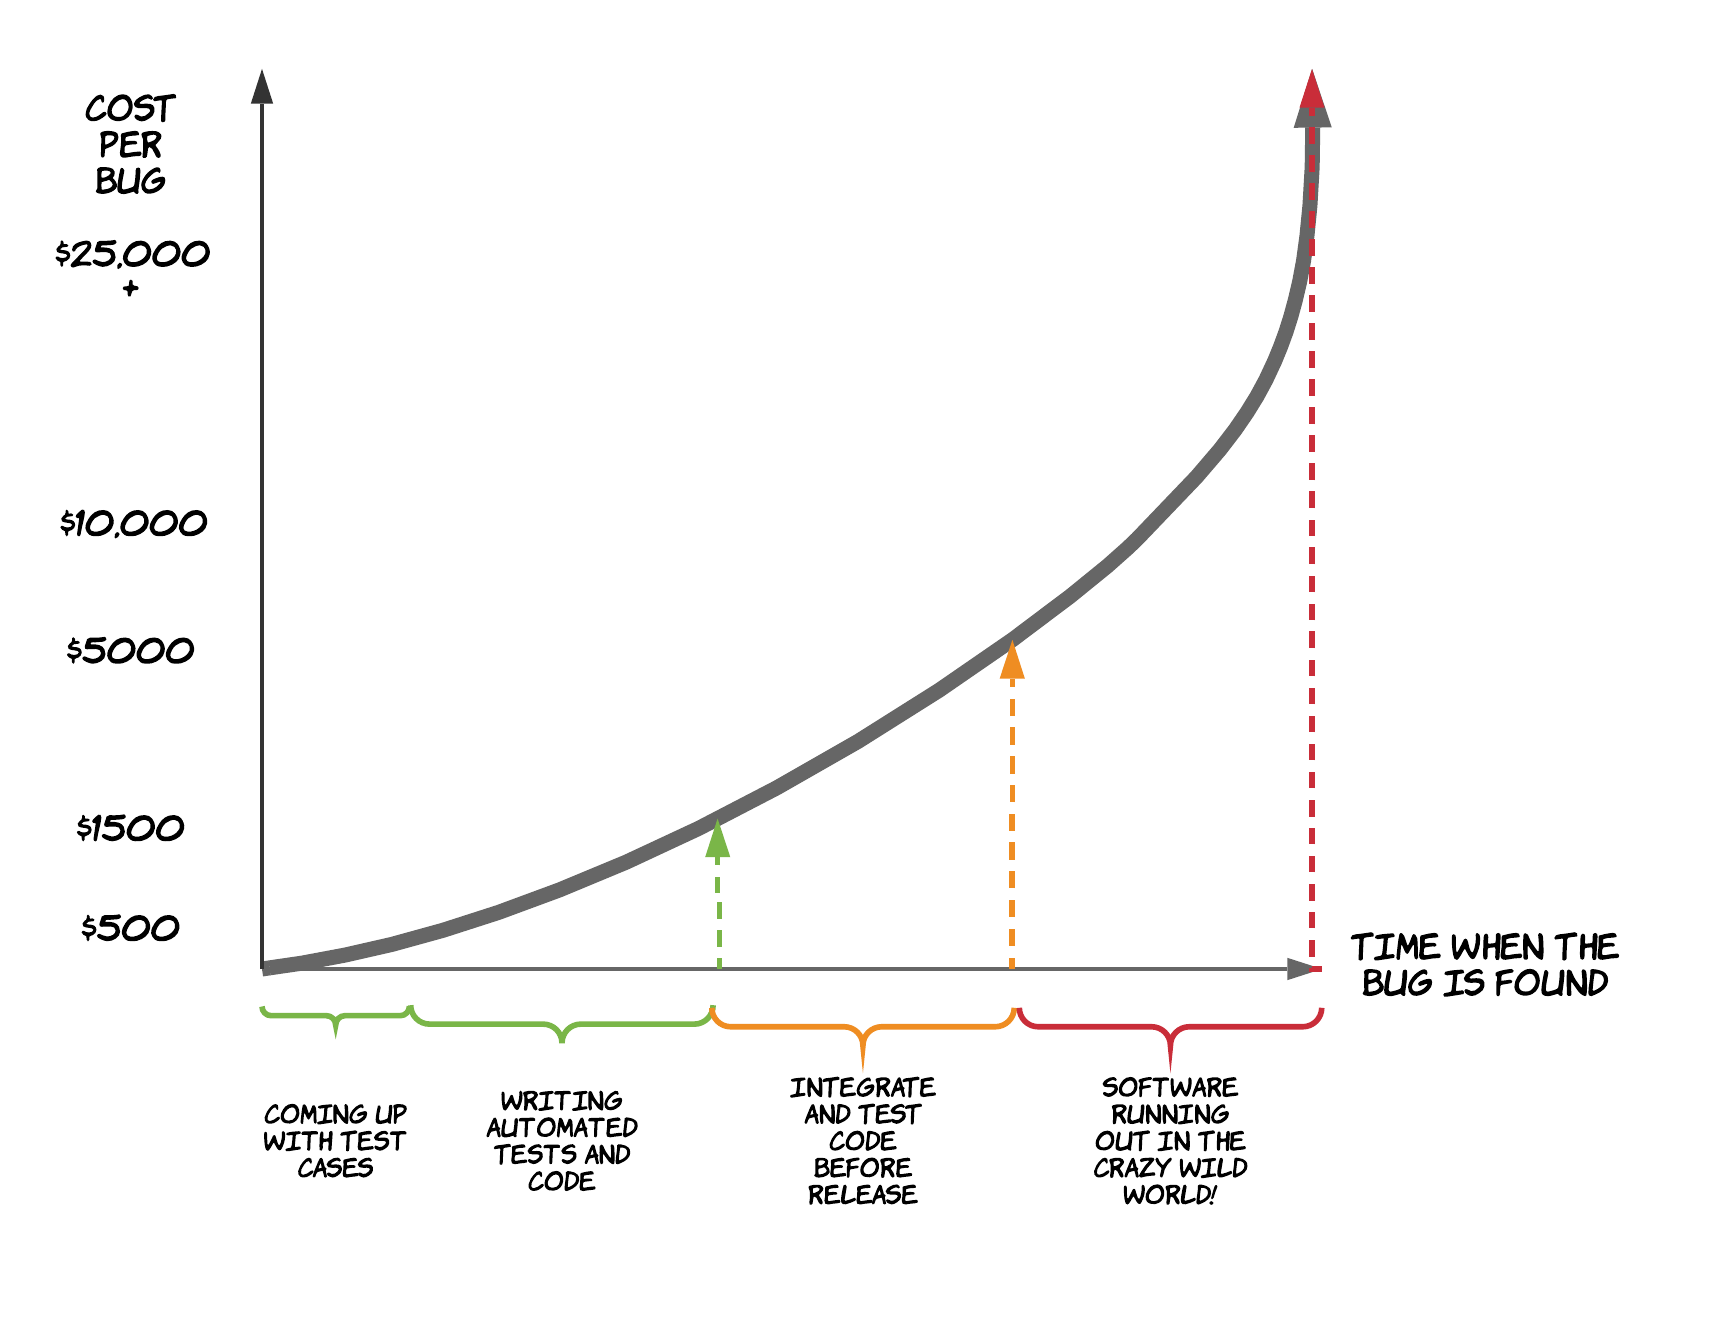 Cost per defect as time passes, diagram.